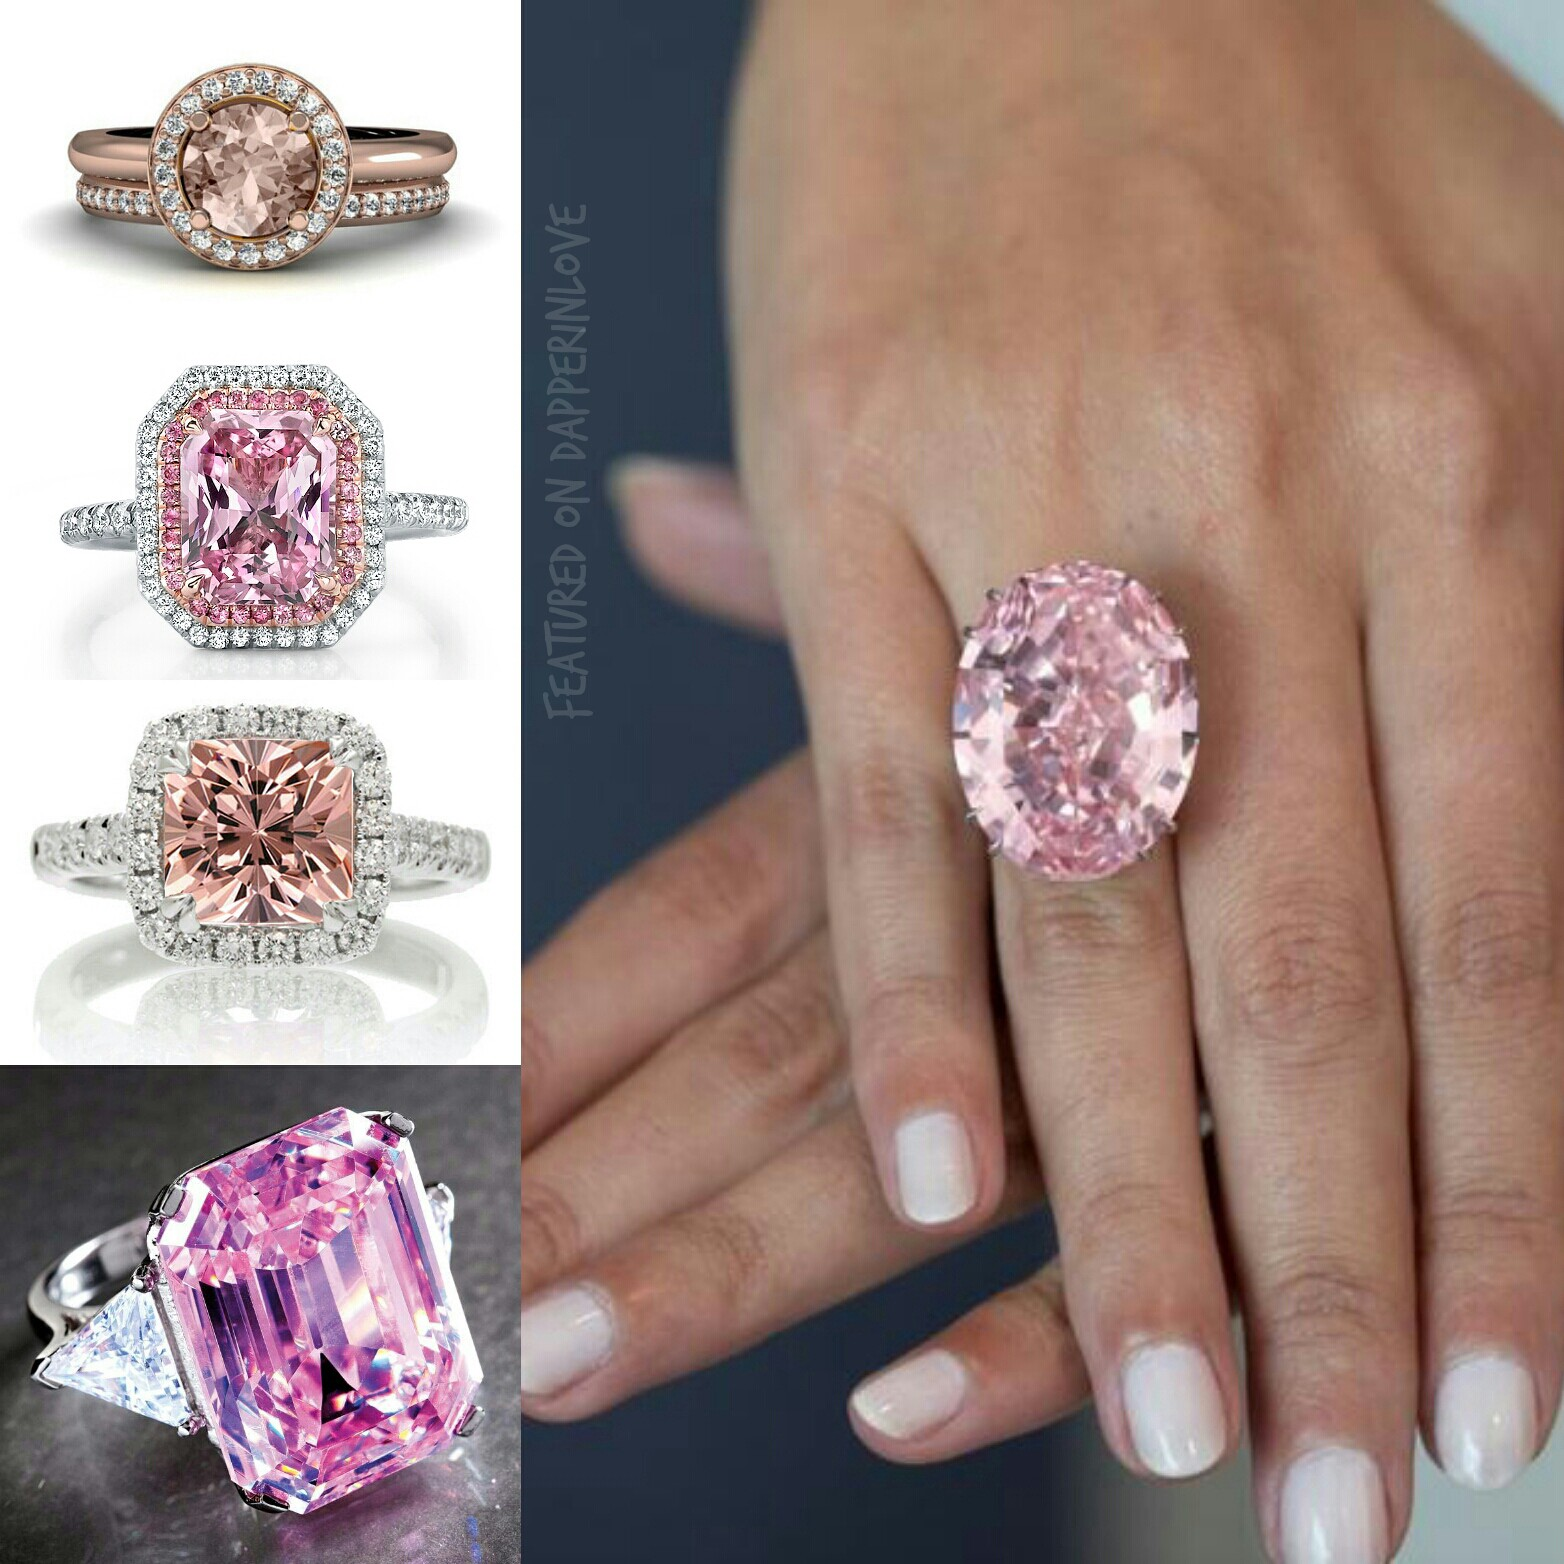 expensive engagement dollar million very kate that ring are ftr rings middleton